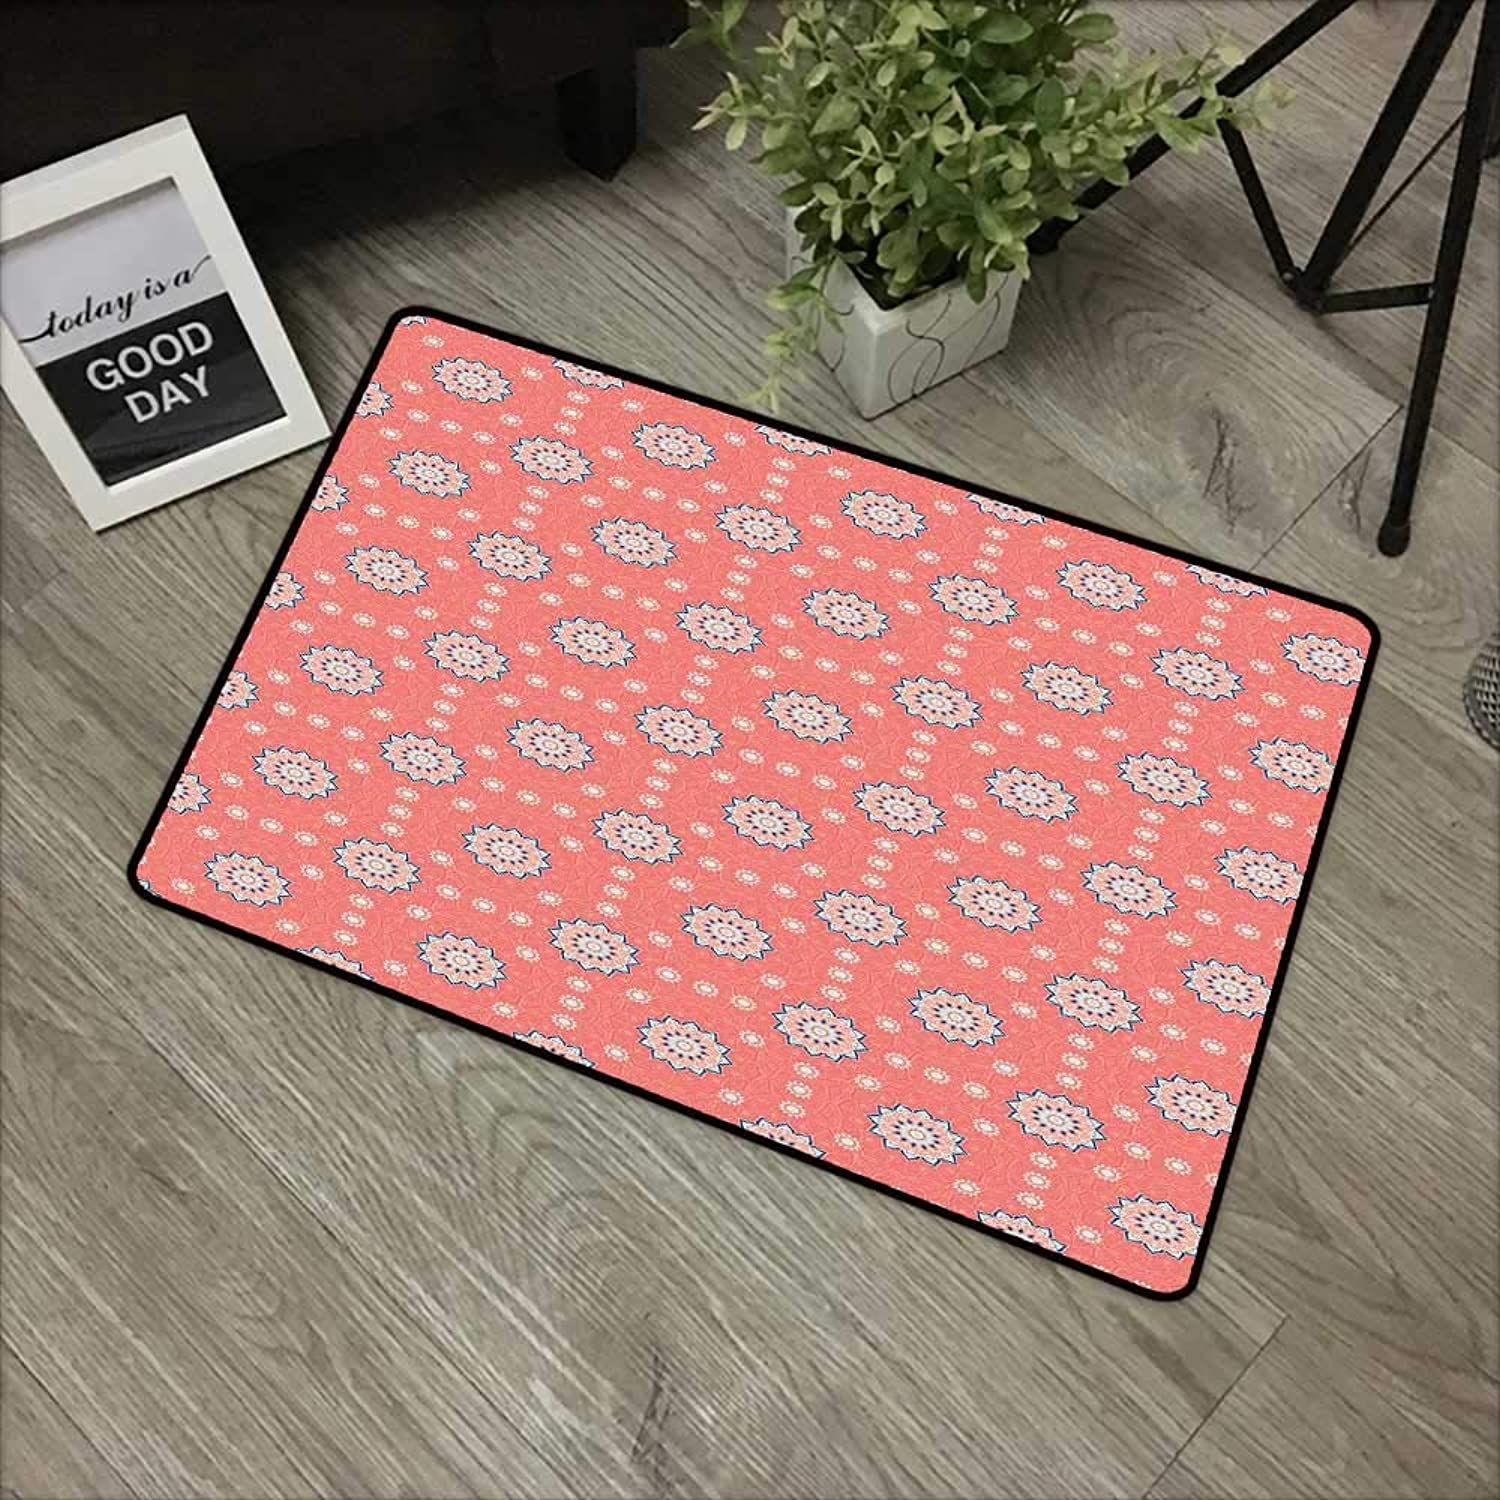 Bathroom door mat W35 x L59 INCH Mgoldccan,Artistic Asian Floral Framework Faded Leaf Ornaments Old Fashioned Blossoms,Coral Peach bluee Easy to clean, no deformation, no fading Non-slip Door Mat Carpet